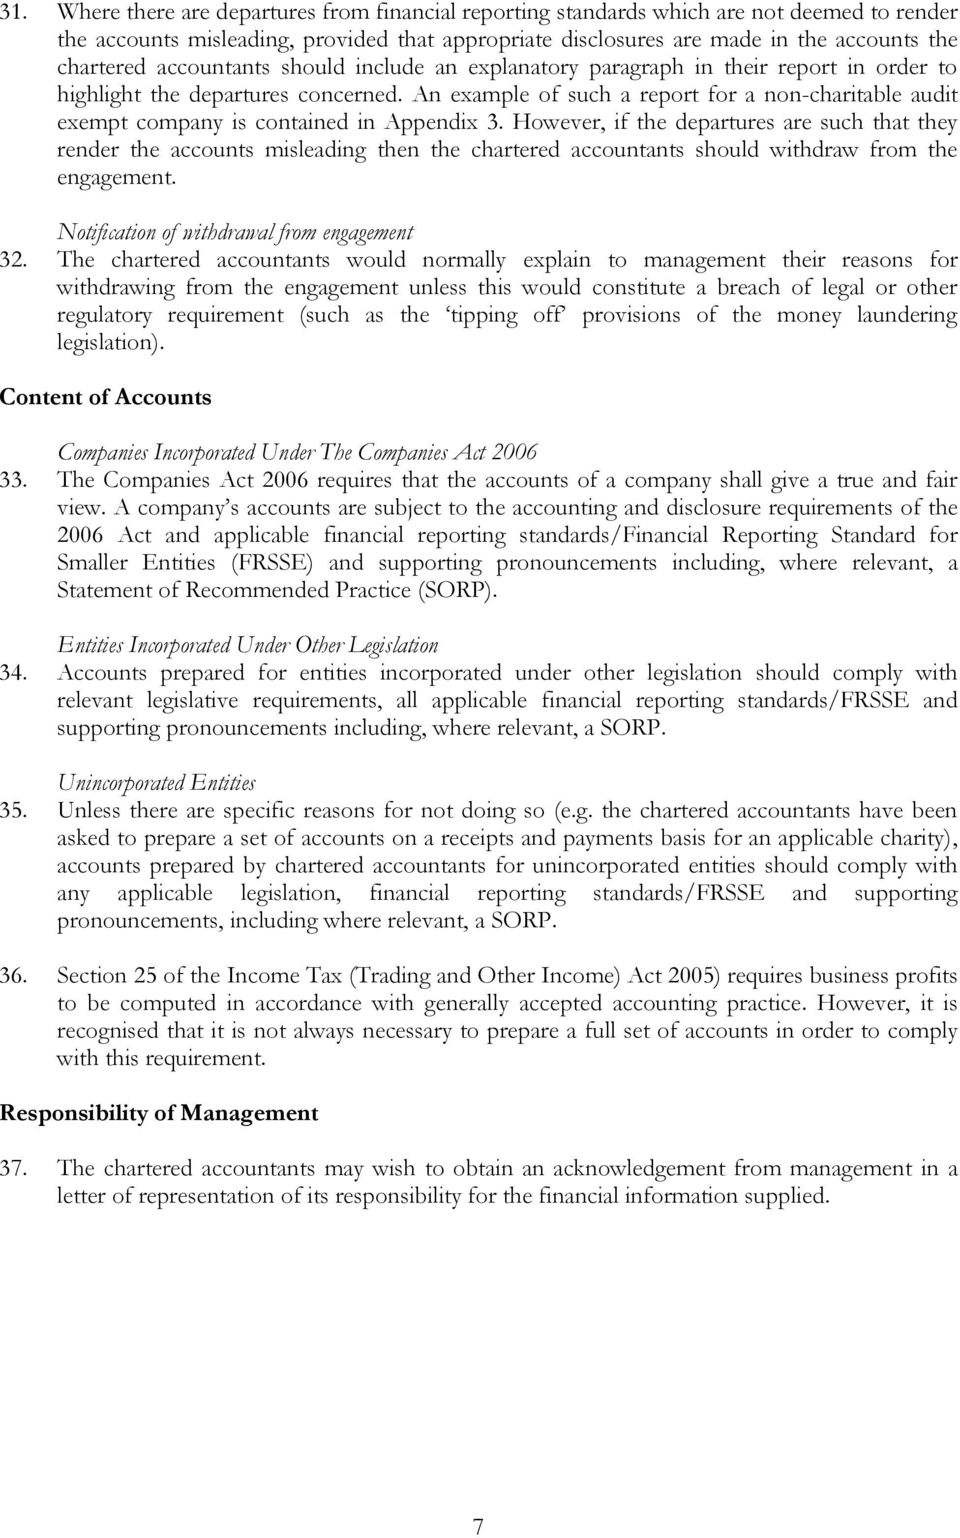 An example of such a report for a non-charitable audit exempt company is contained in Appendix 3.